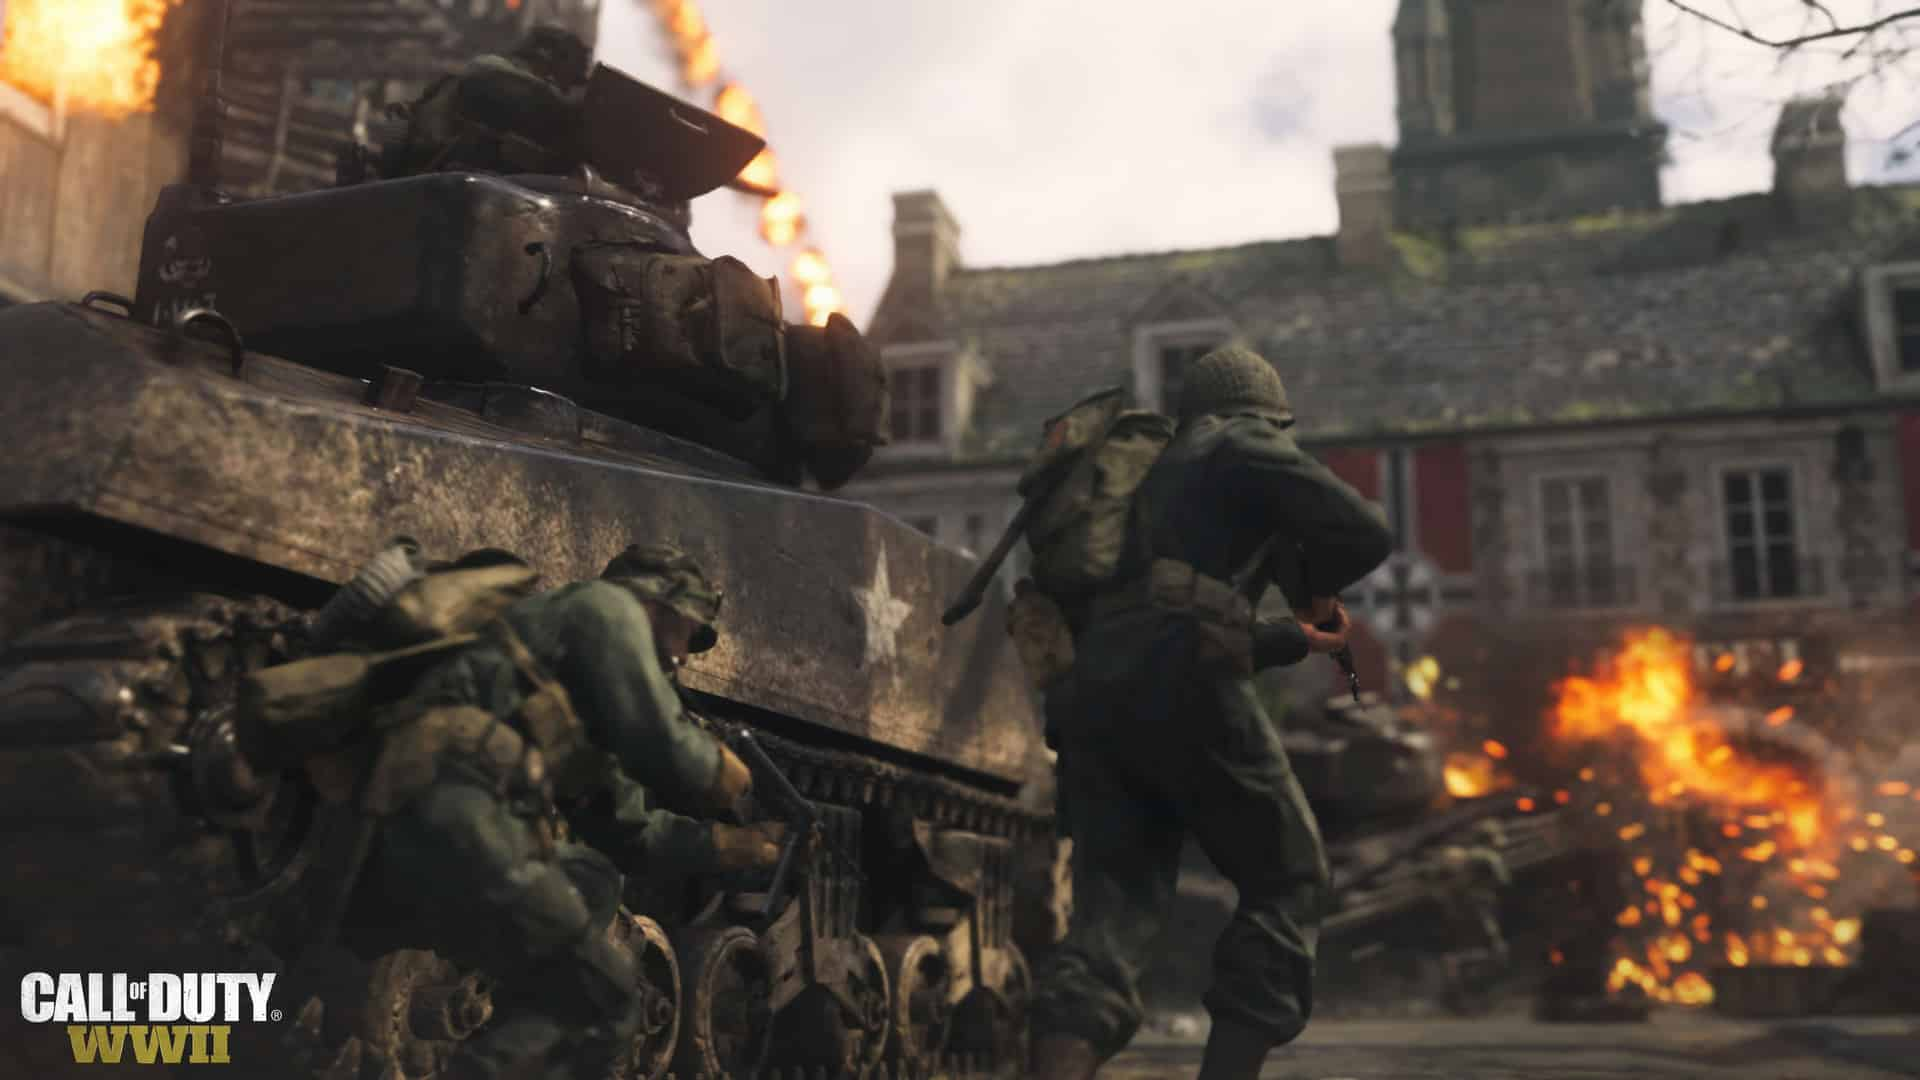 Activision's Call of Duty Sees $500 Million in Opening Weekend